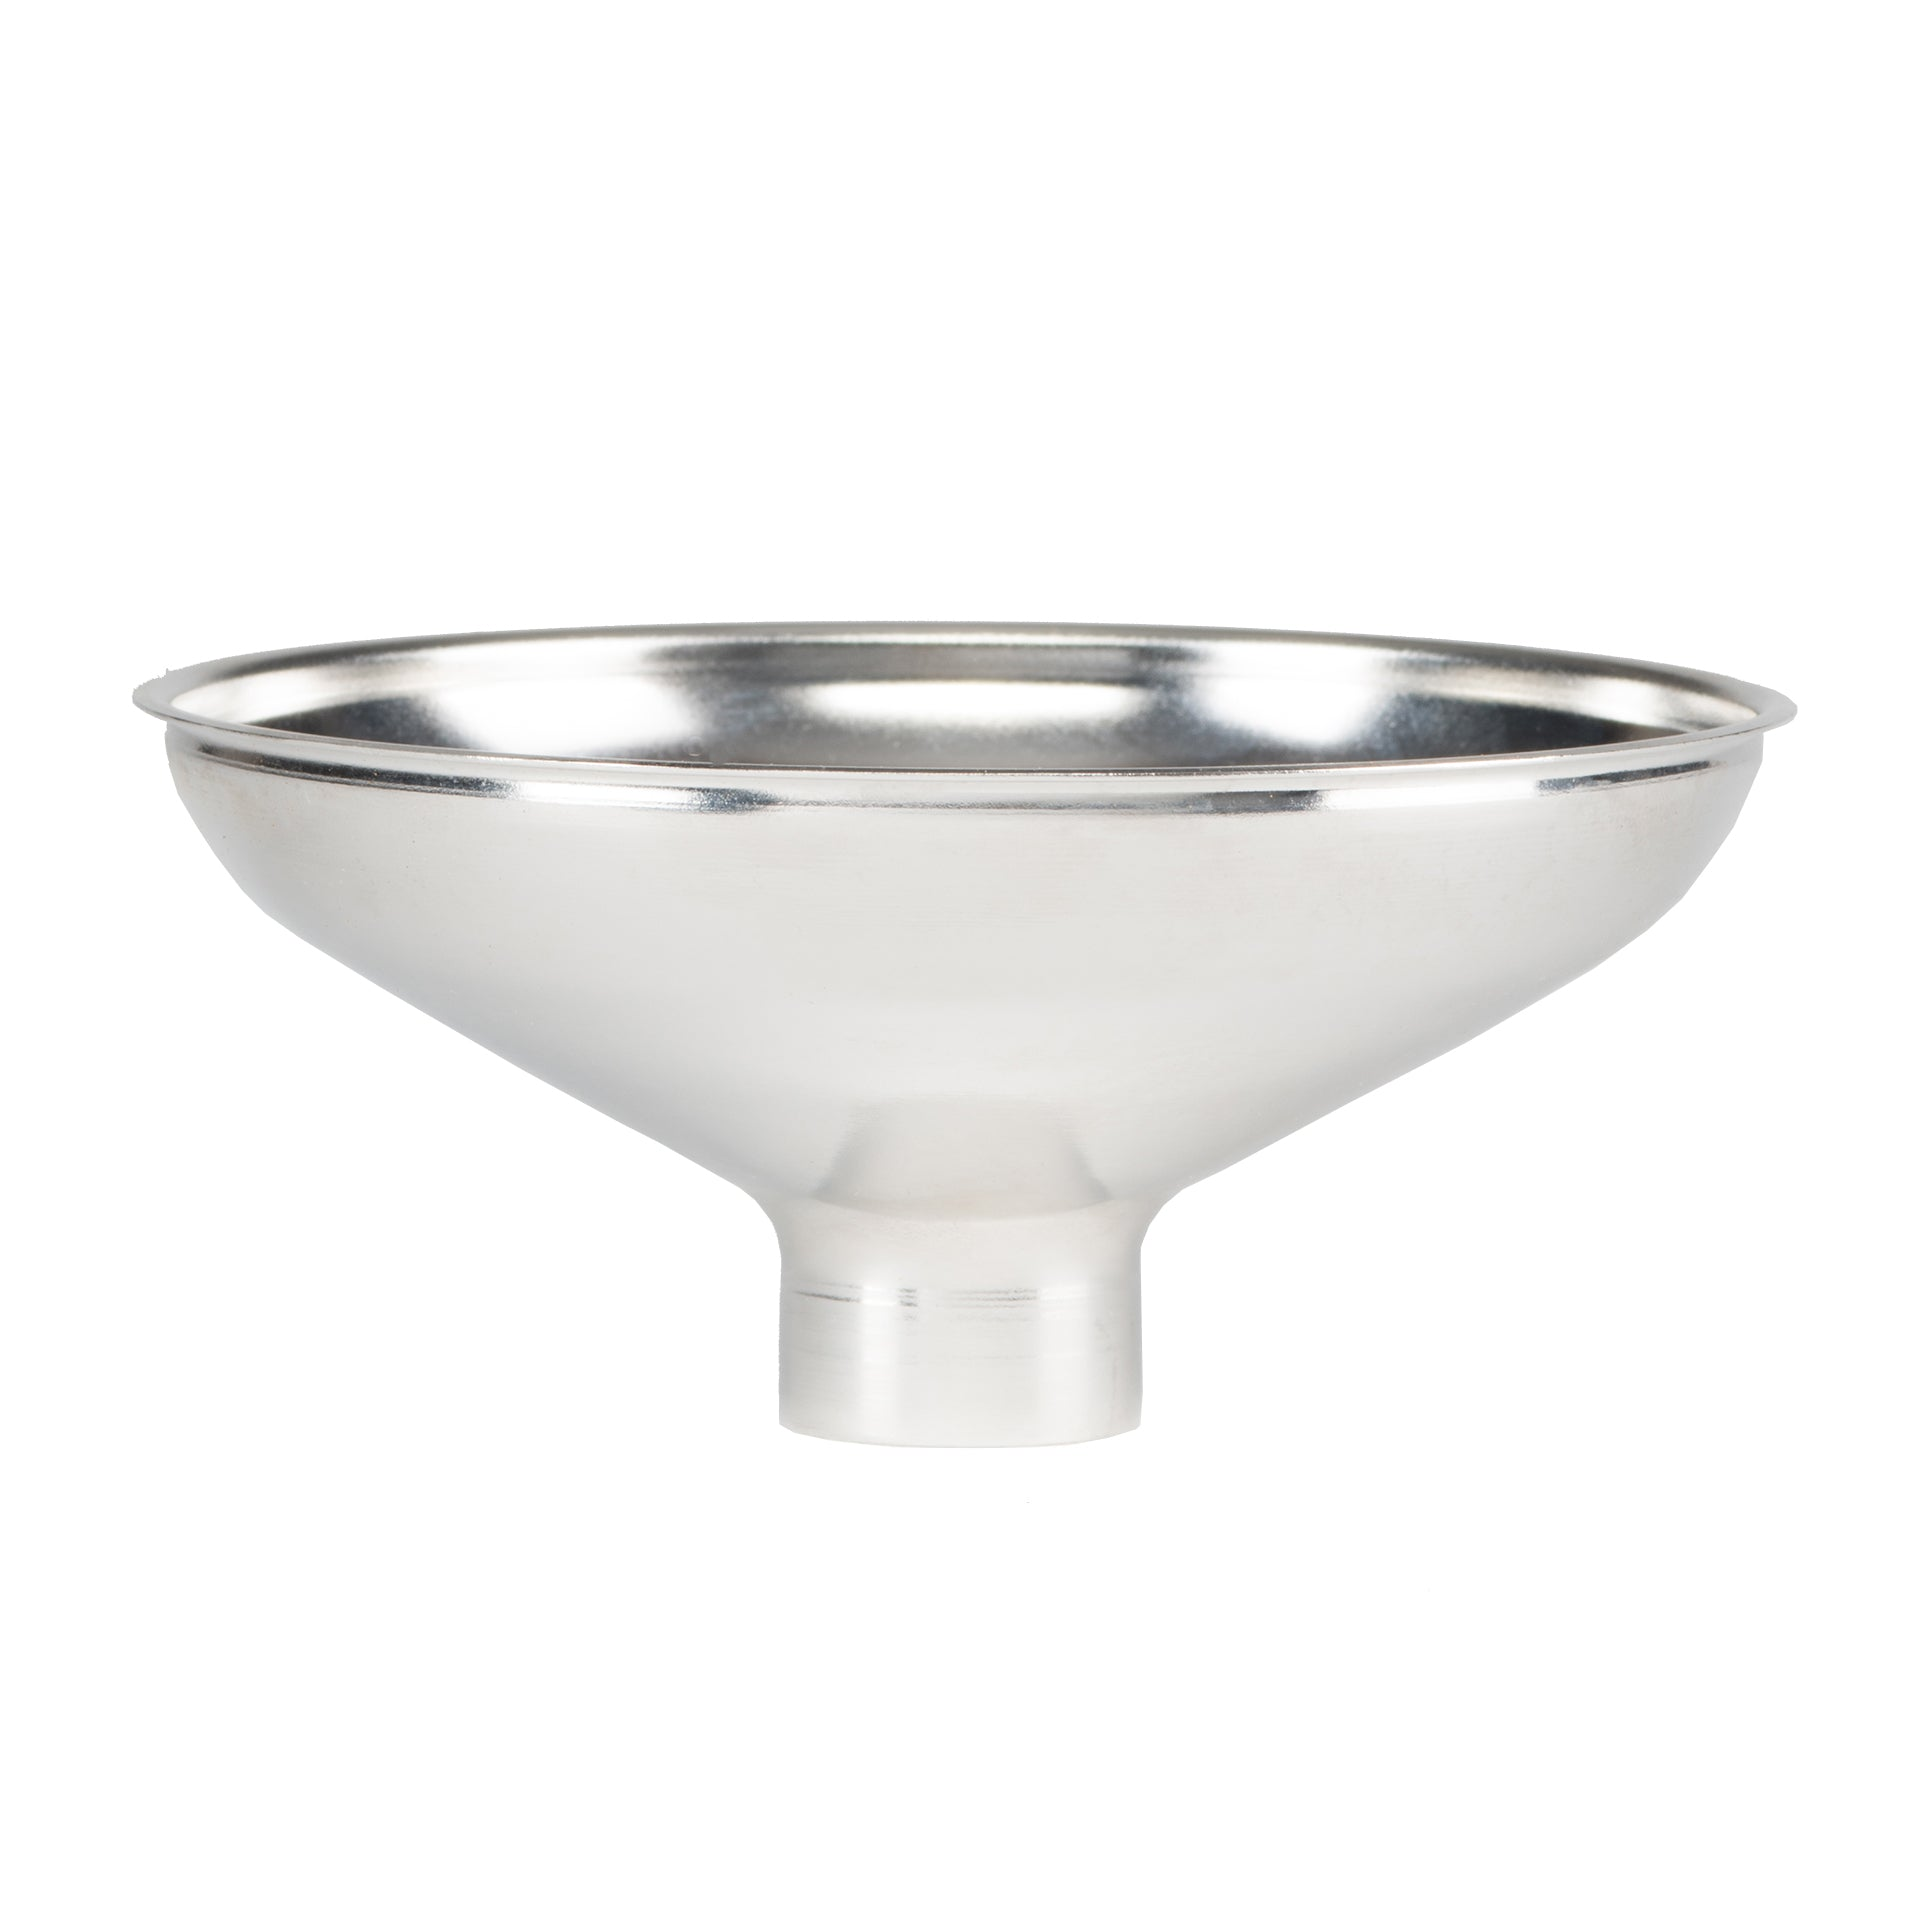 "Spice Funnel - Stainless Steel - Narrow 1"" Opening"